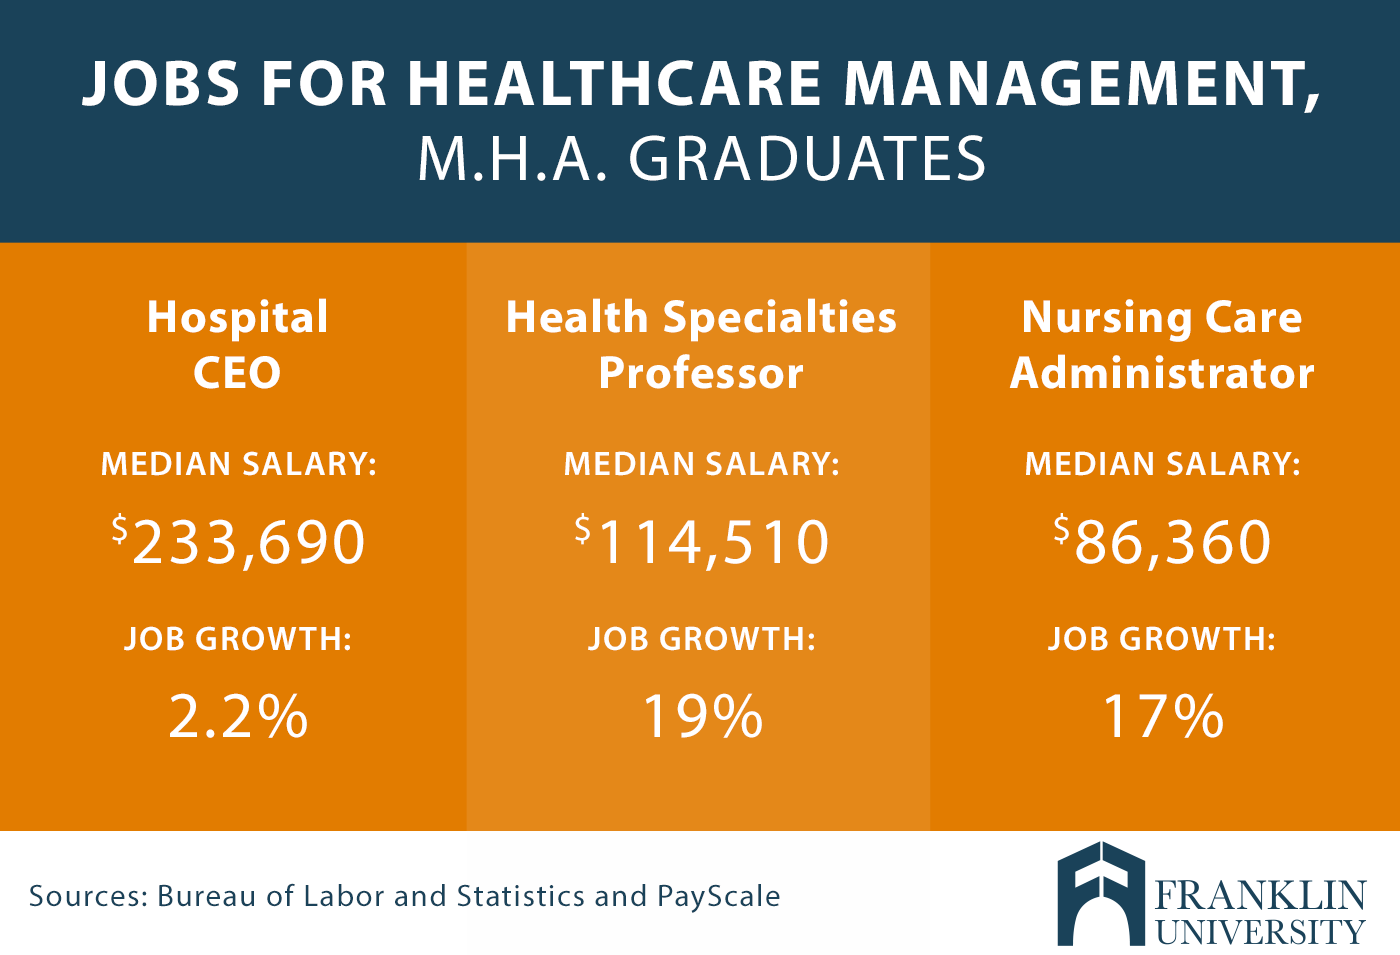 graphic describes jobs for healthcare management, M.H.A graduates